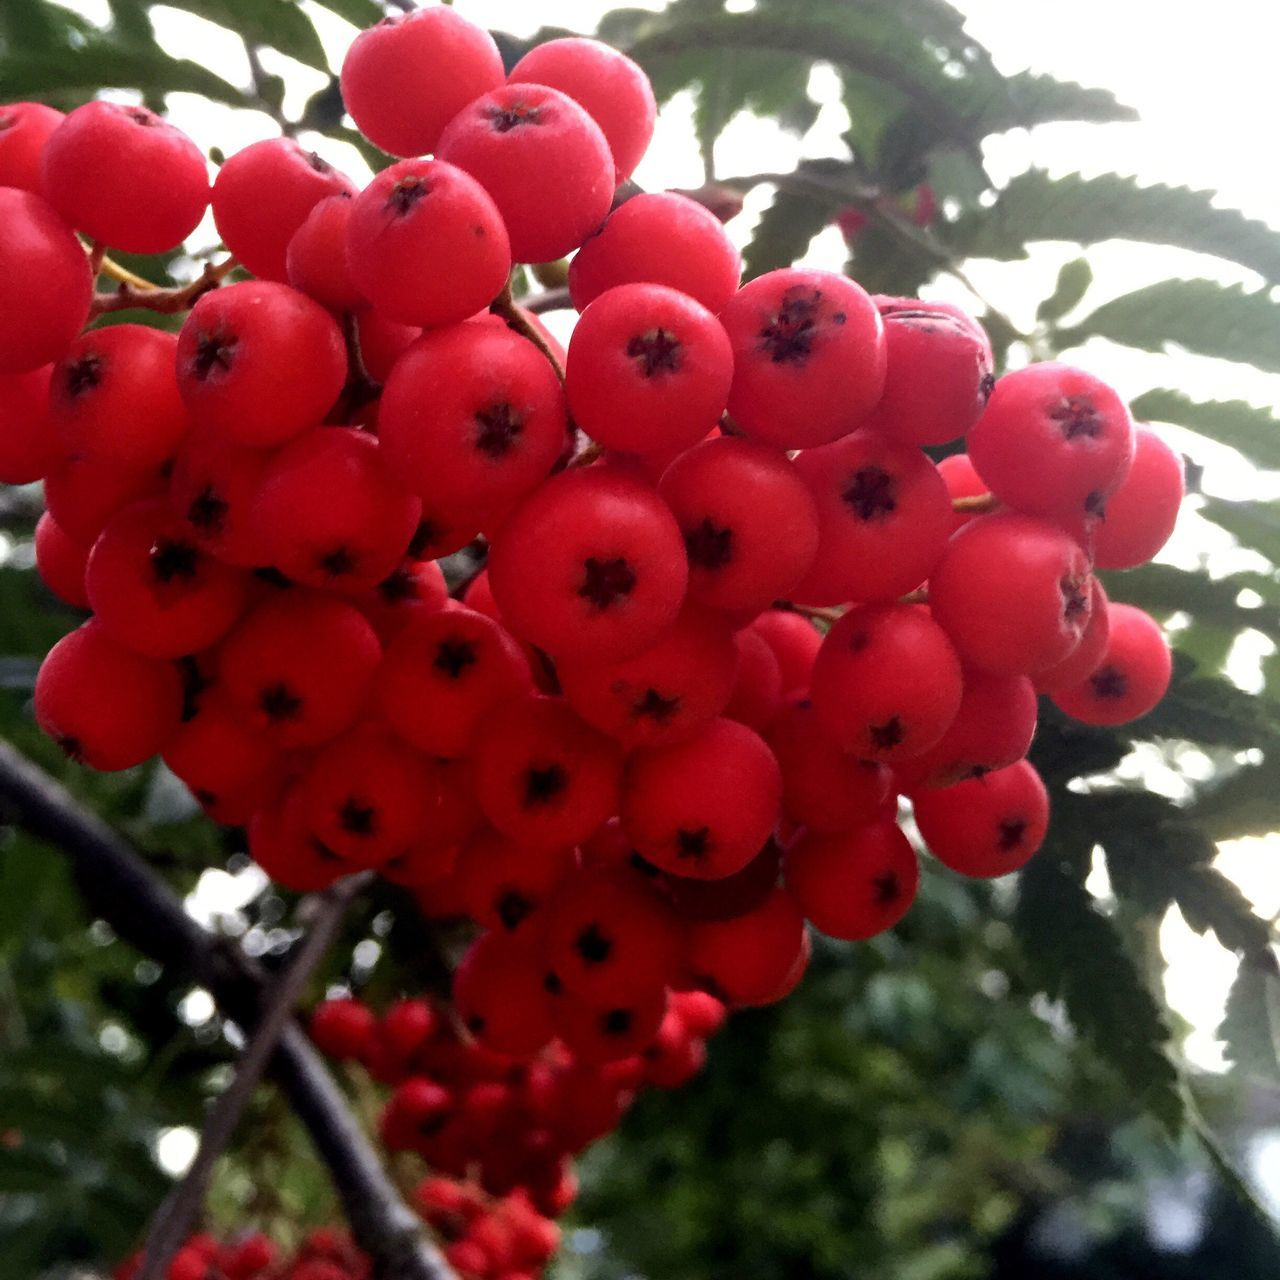 Red Fruit Abundance Selective Focus Vibrant Color Close-up Nature like Berries IPhoneography Iphonephotography